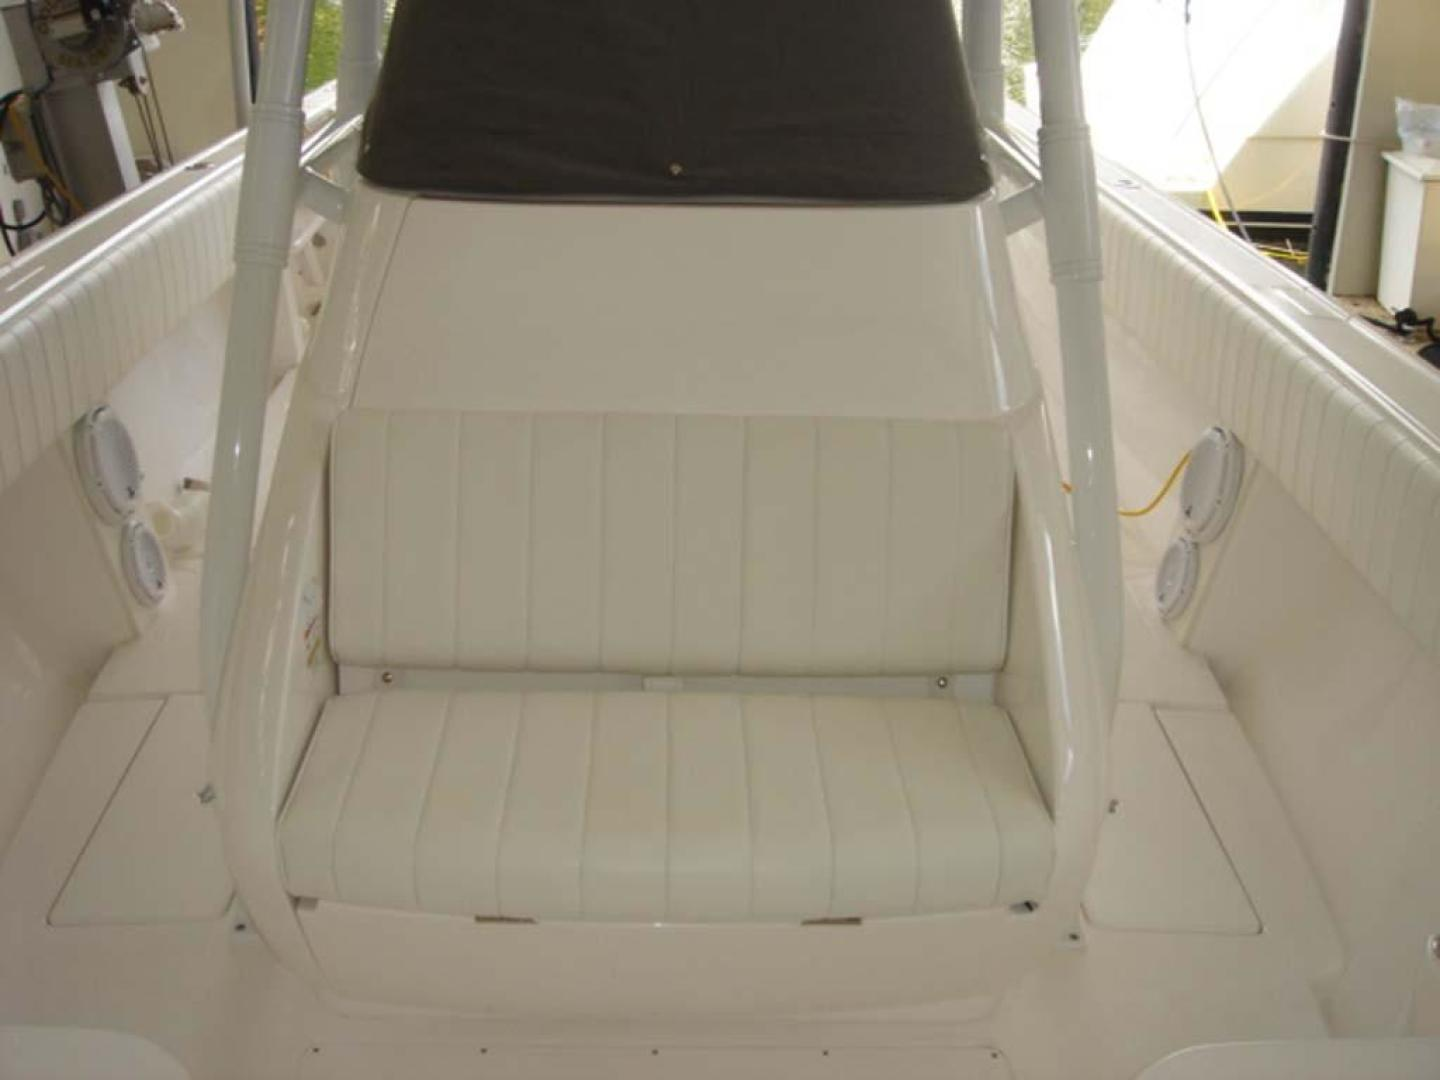 Intrepid-327 Center Console 2014-Deep Ship Palm Beach Gardens-Florida-United States-924011 | Thumbnail